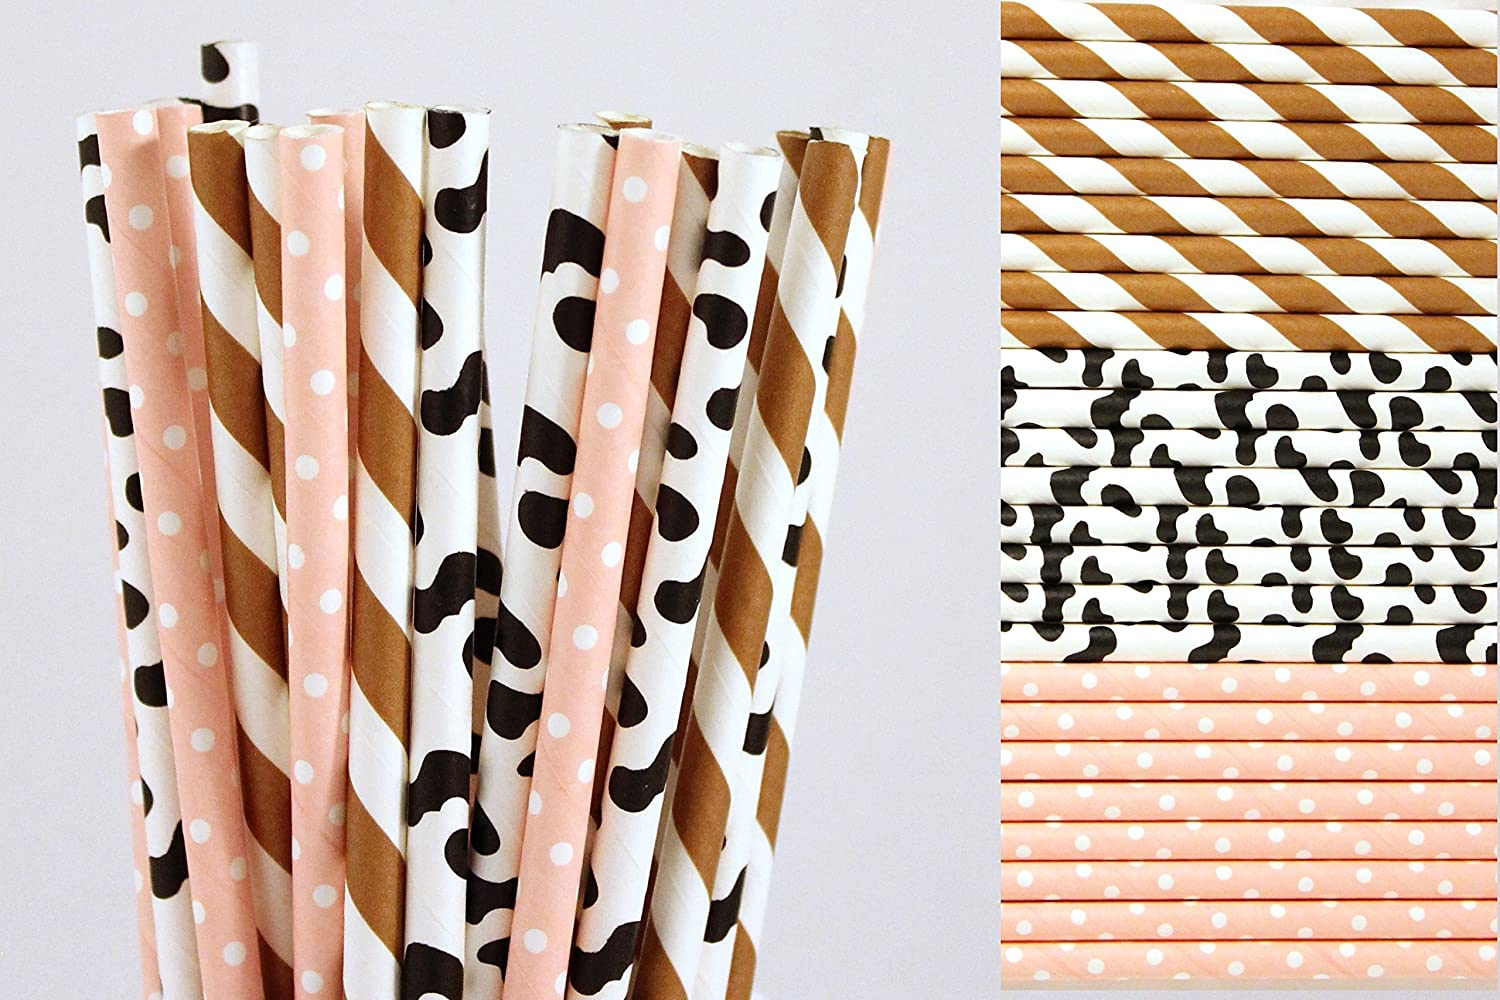 Cowgirl Paper Straw Mix - Brown Striped, Pink Polka Dots, Cow Print (25)